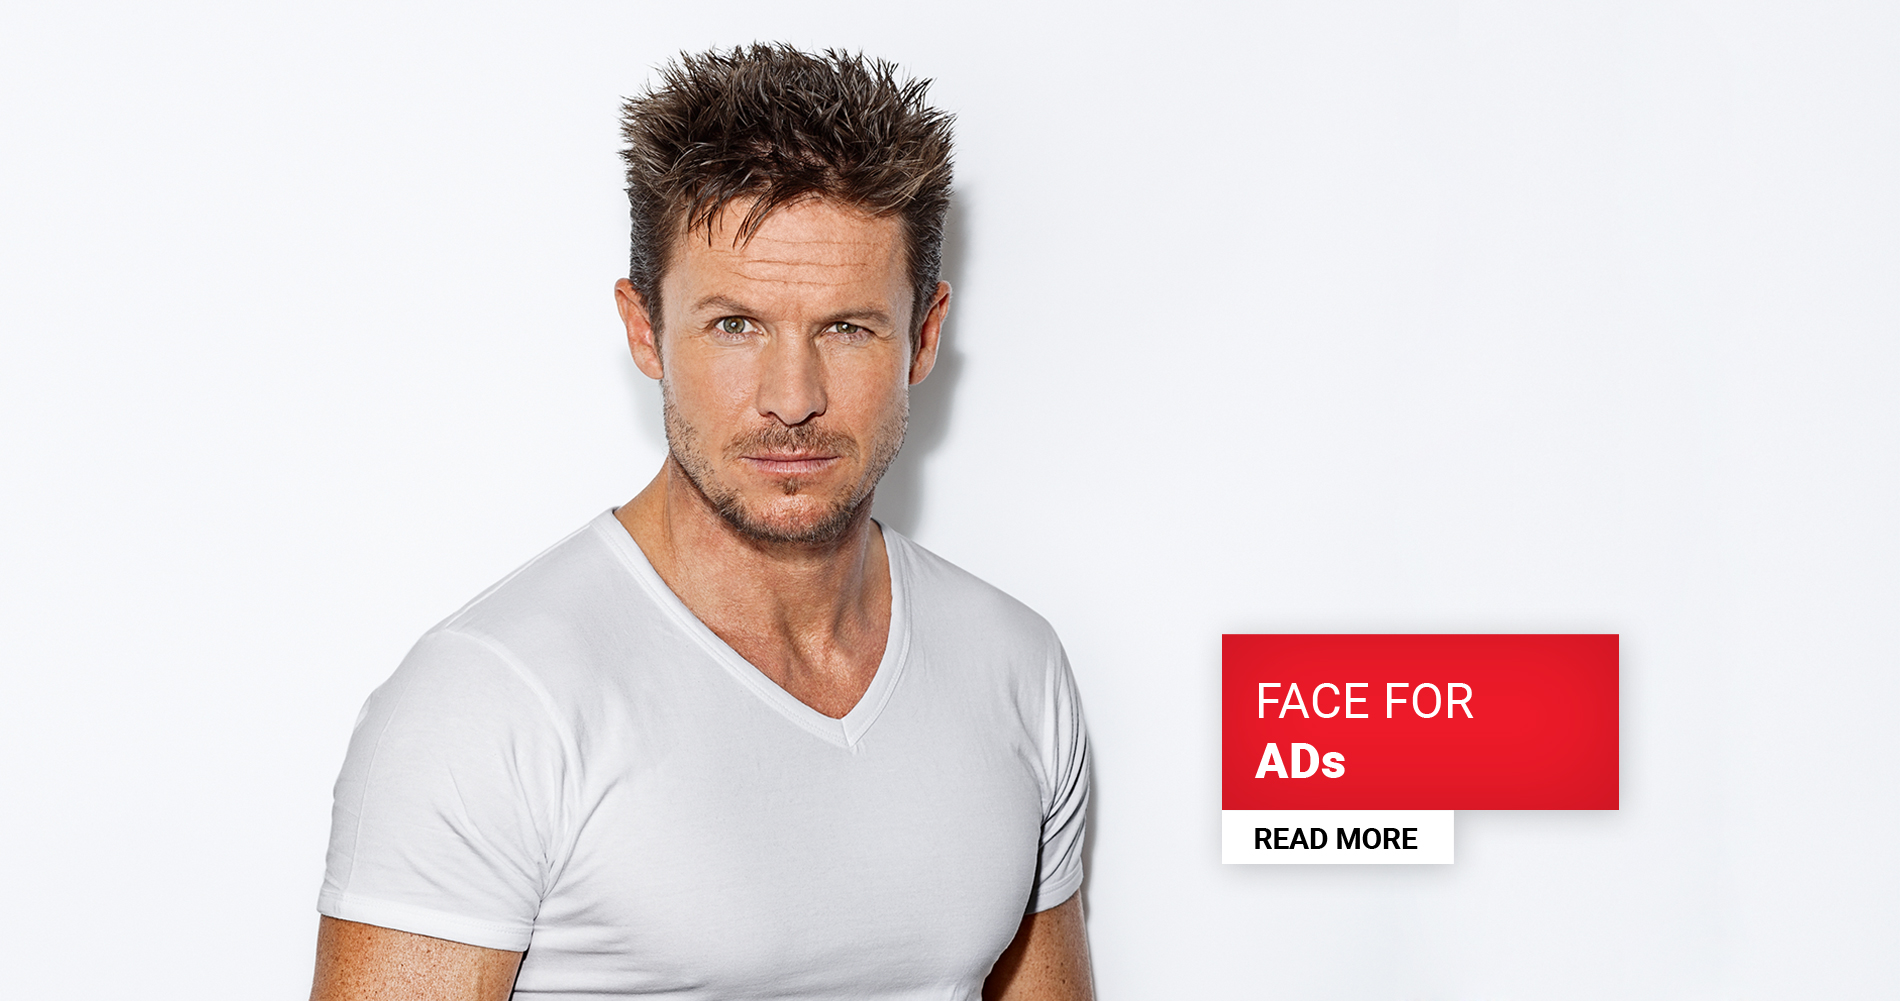 FACE FOR ADS